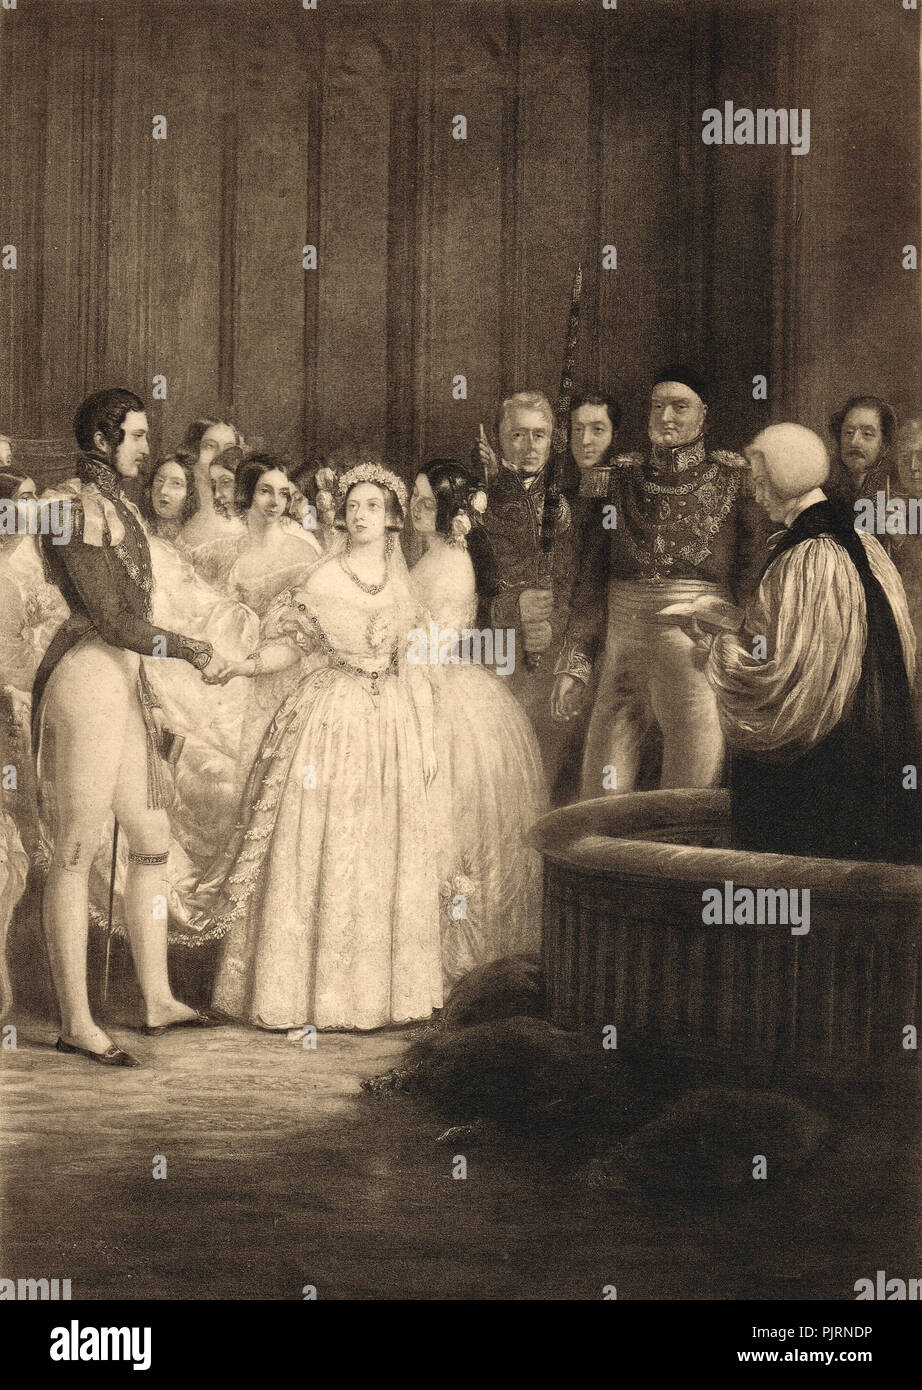 The Marriage of Queen Victoria and Prince Albert, 10 February 1840, Chapel Royal, St. James's Palace, London, England - Stock Image